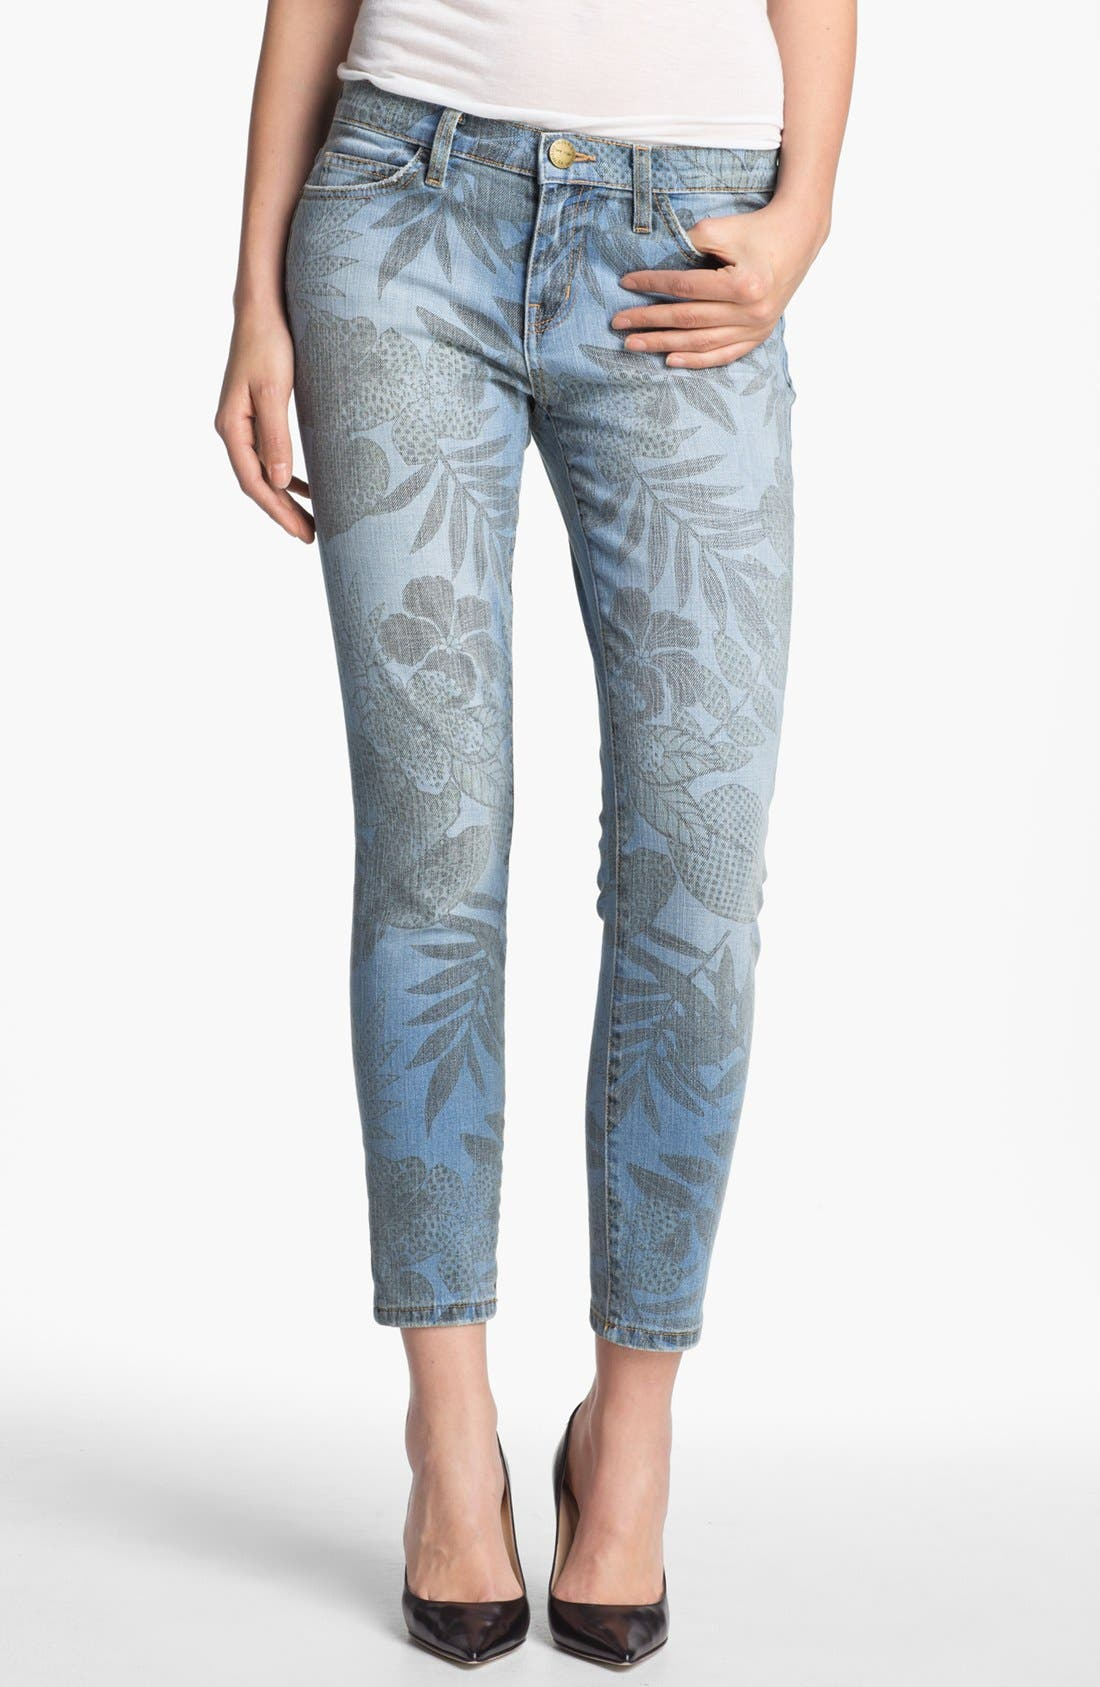 Alternate Image 1 Selected - Current/Elliott 'The Stiletto' Jungle Print Stretch Jeans